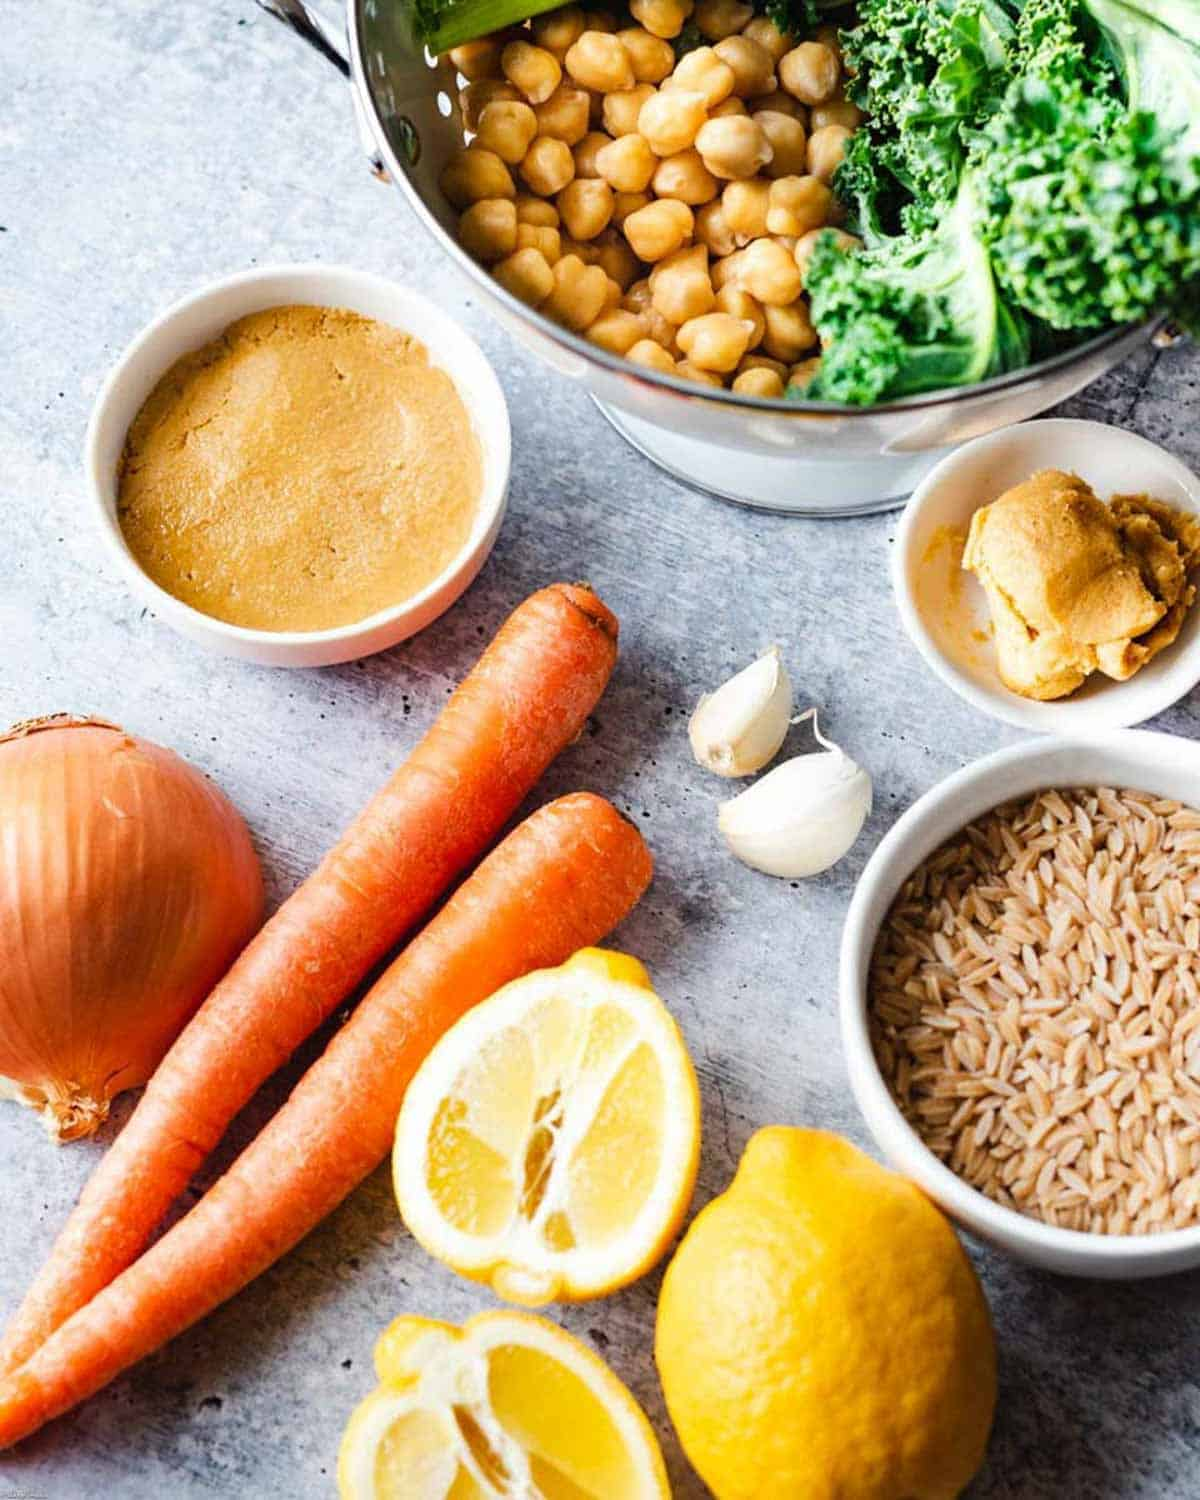 Ingredients for Chickpea Miso Pasta Soup –chickpeas, kale, miso paste, onion, garlic, carrots, orzo, and lemon.